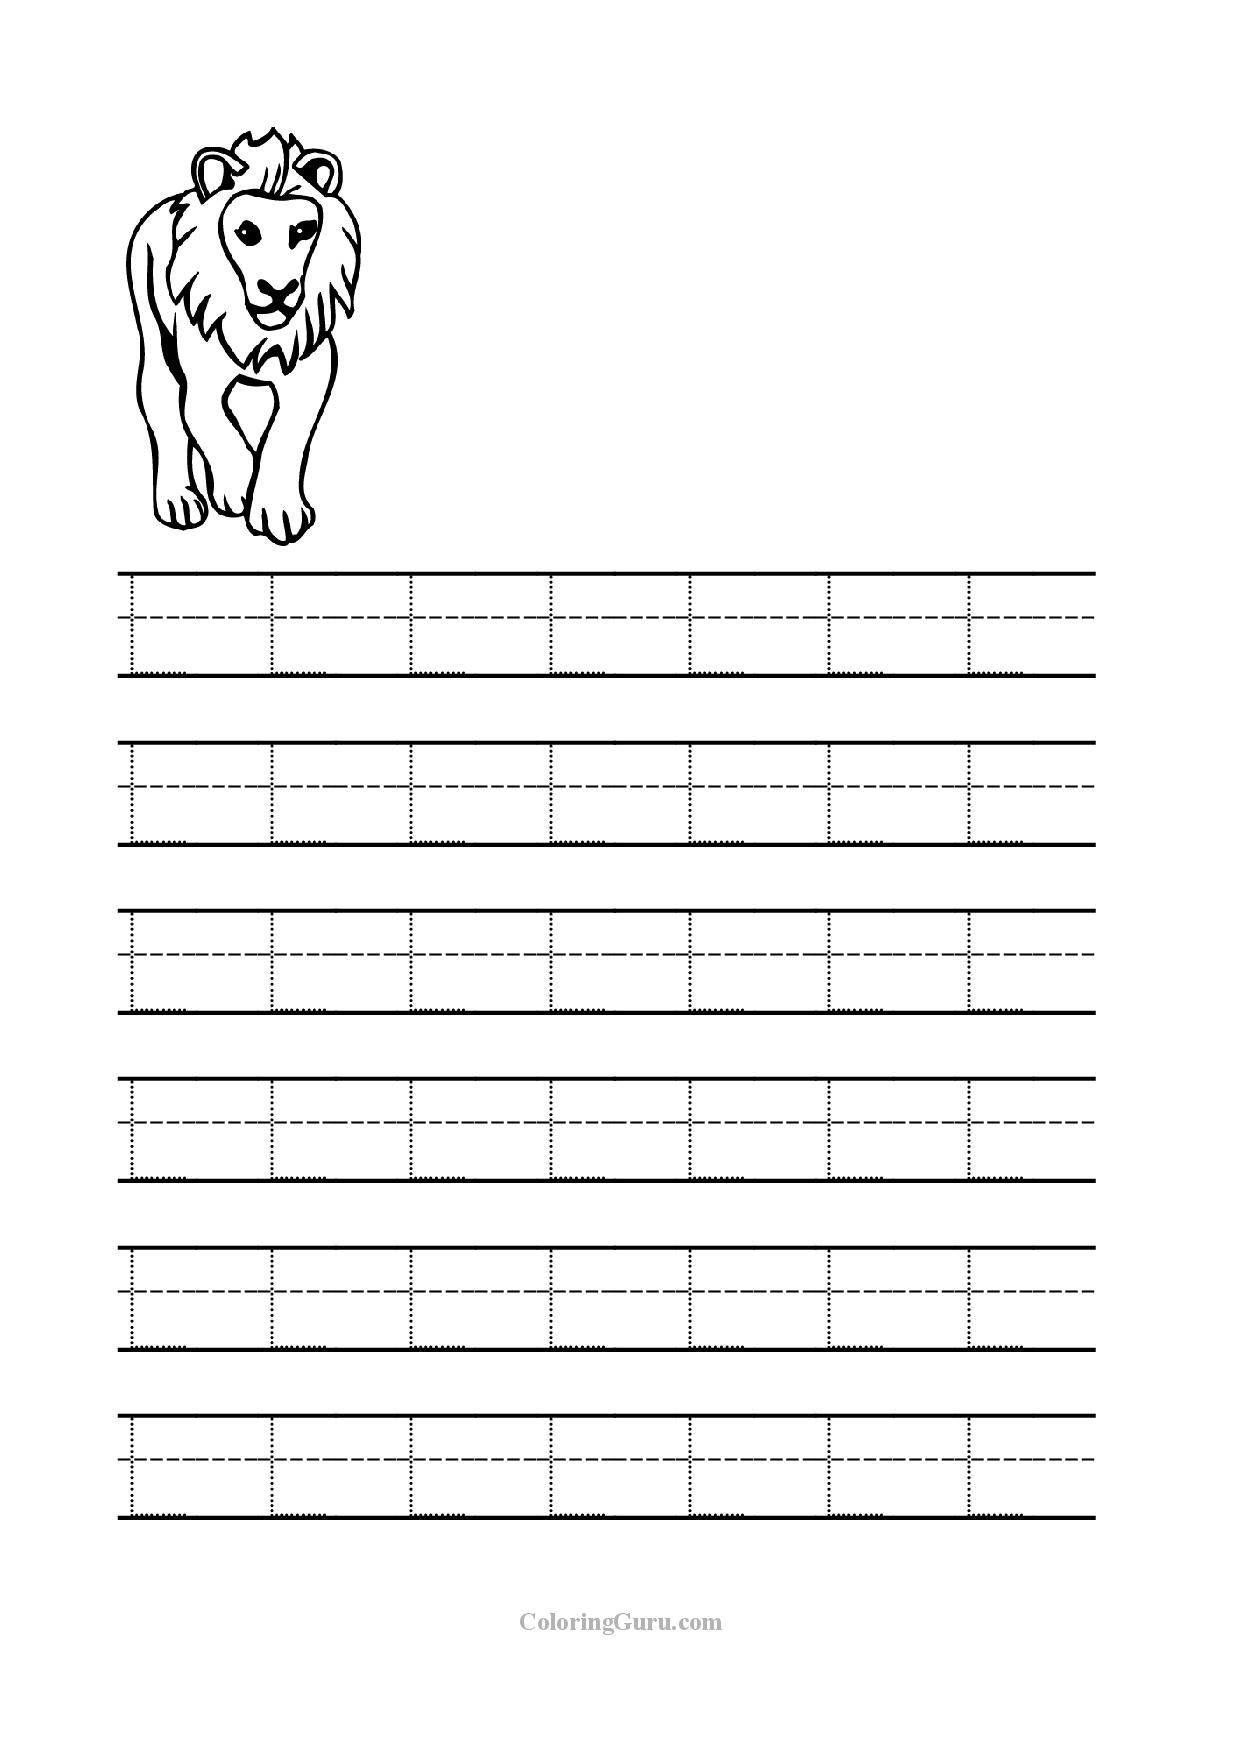 free printable tracing letter l worksheets for preschool coloring pages for kids. Black Bedroom Furniture Sets. Home Design Ideas